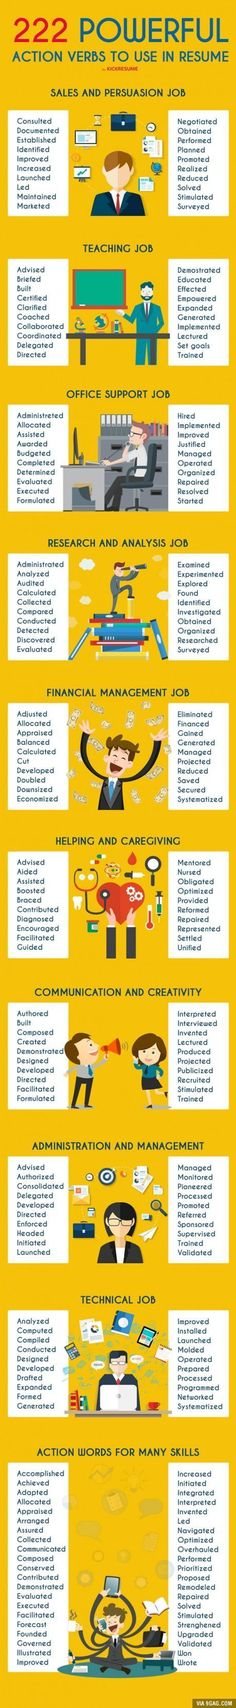 Job-Seeker Resume Action Verbs and Keywords Starting with W